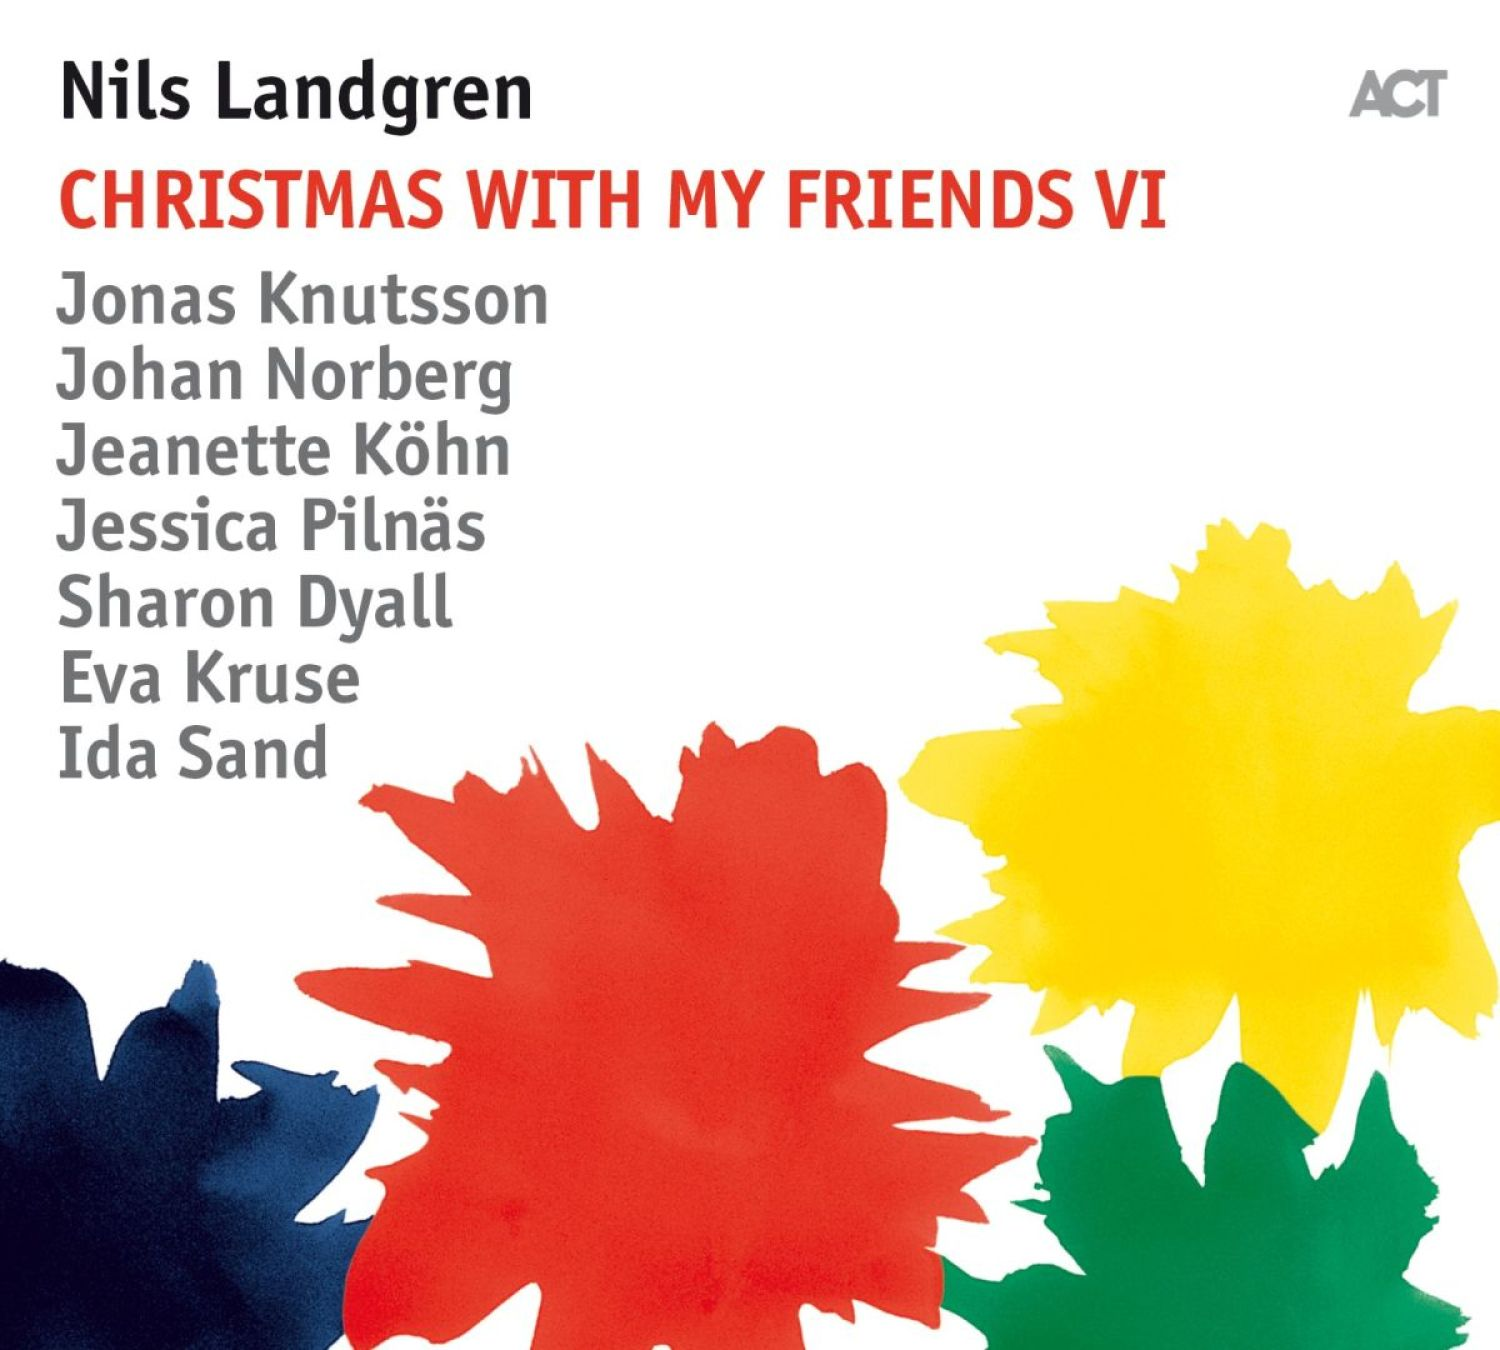 Nils Landgren Christmas with friends